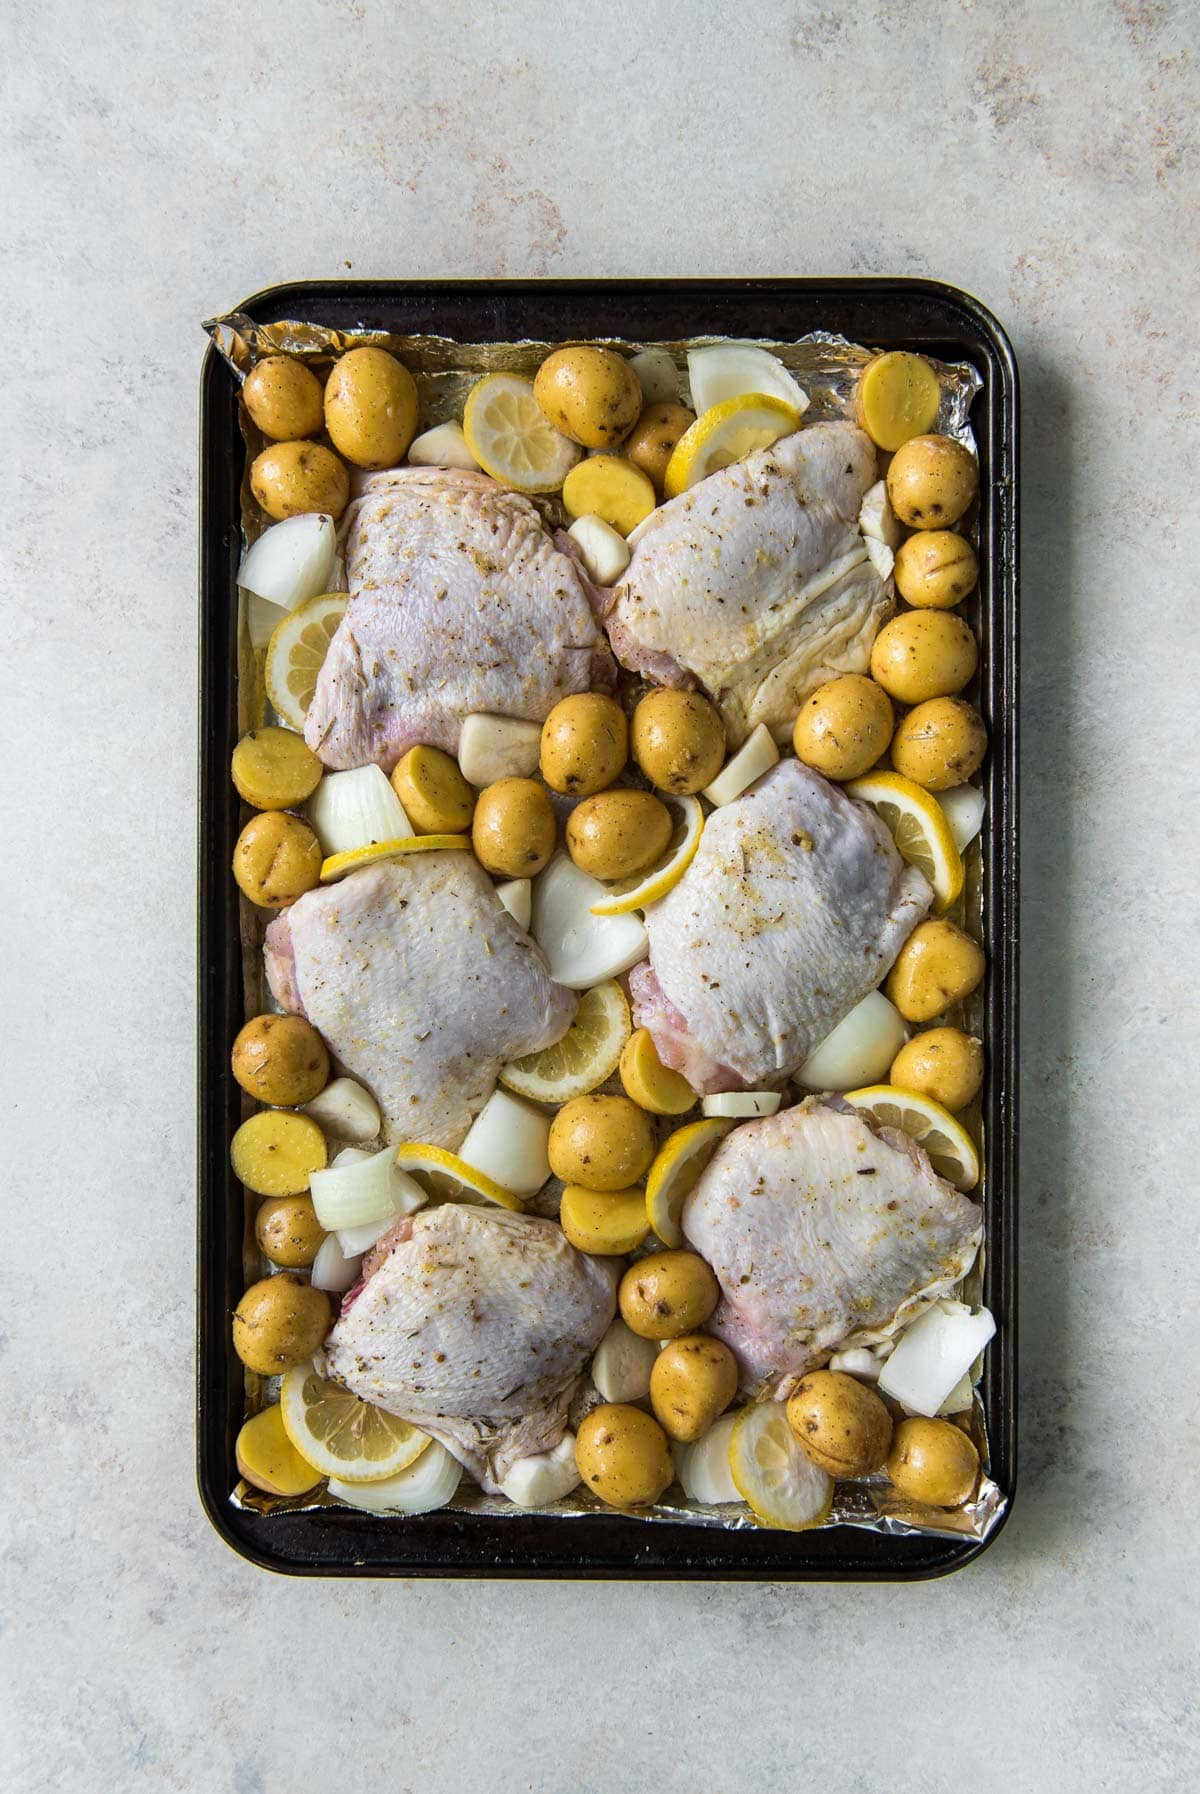 raw chicken thighs with skin, potatoes, onions and lemon slices